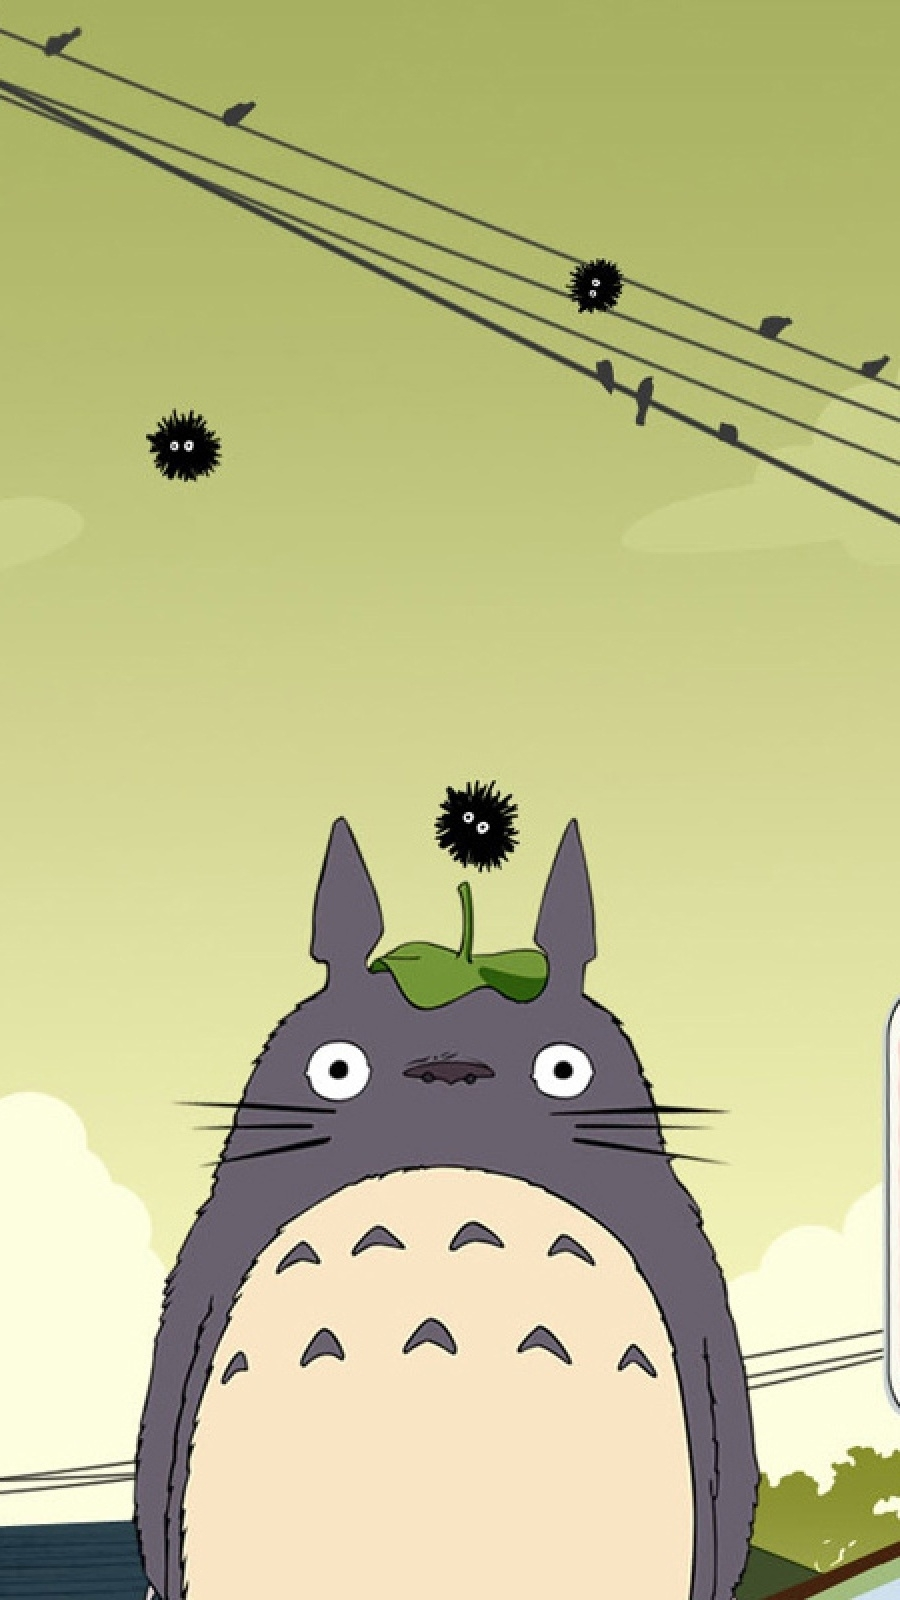 10 Top My Neighbor Totoro Iphone Wallpaper FULL HD 1080p For PC Background